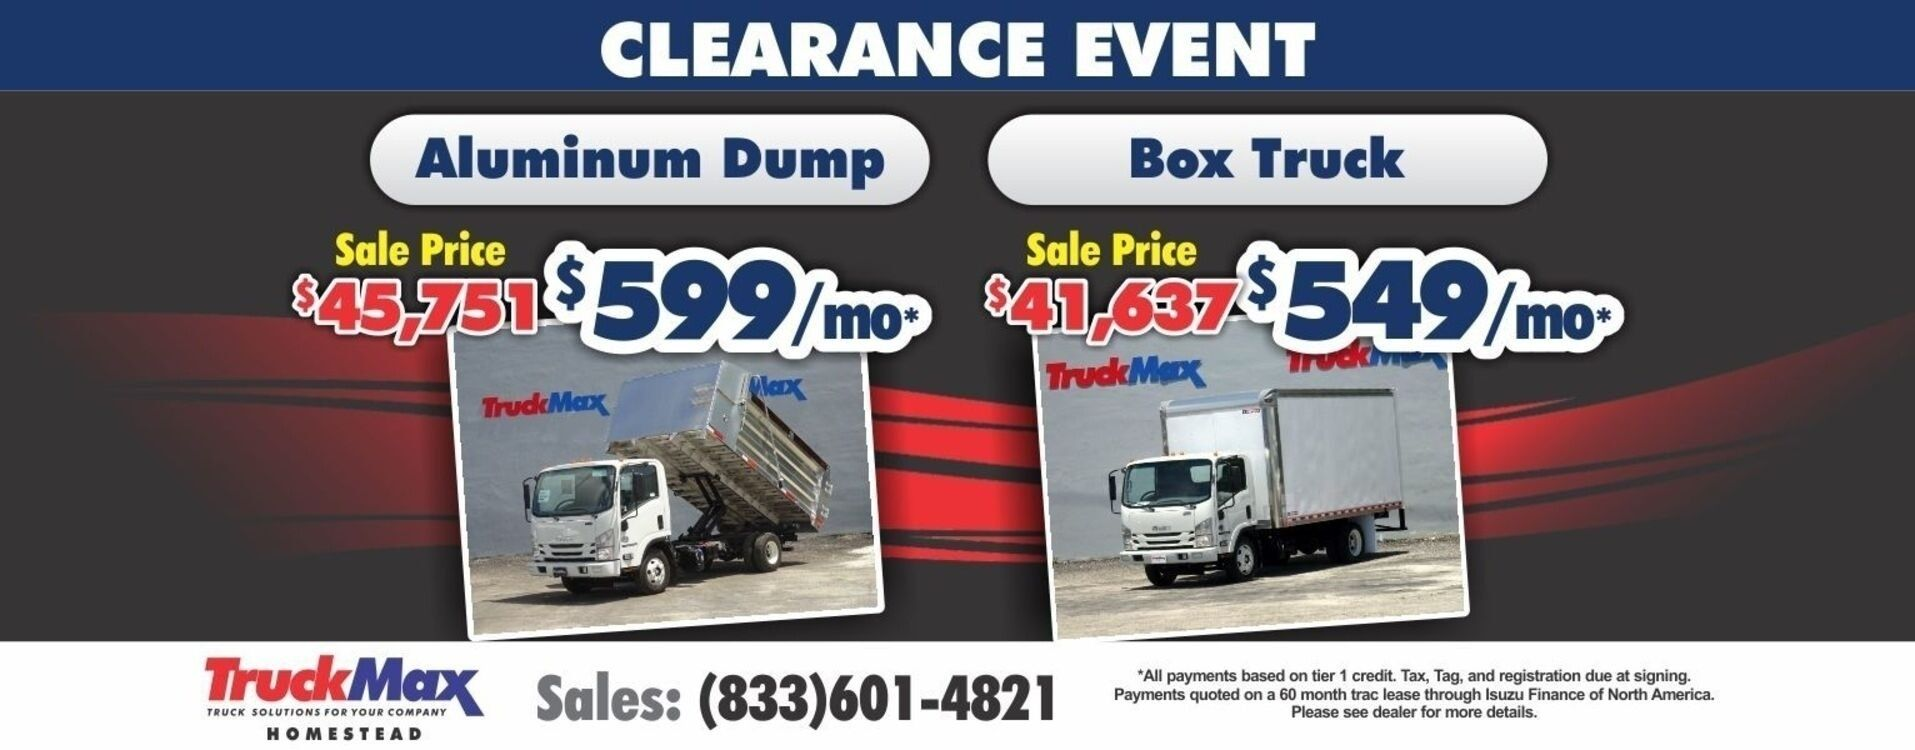 Q1 CLEARANCE EVENT